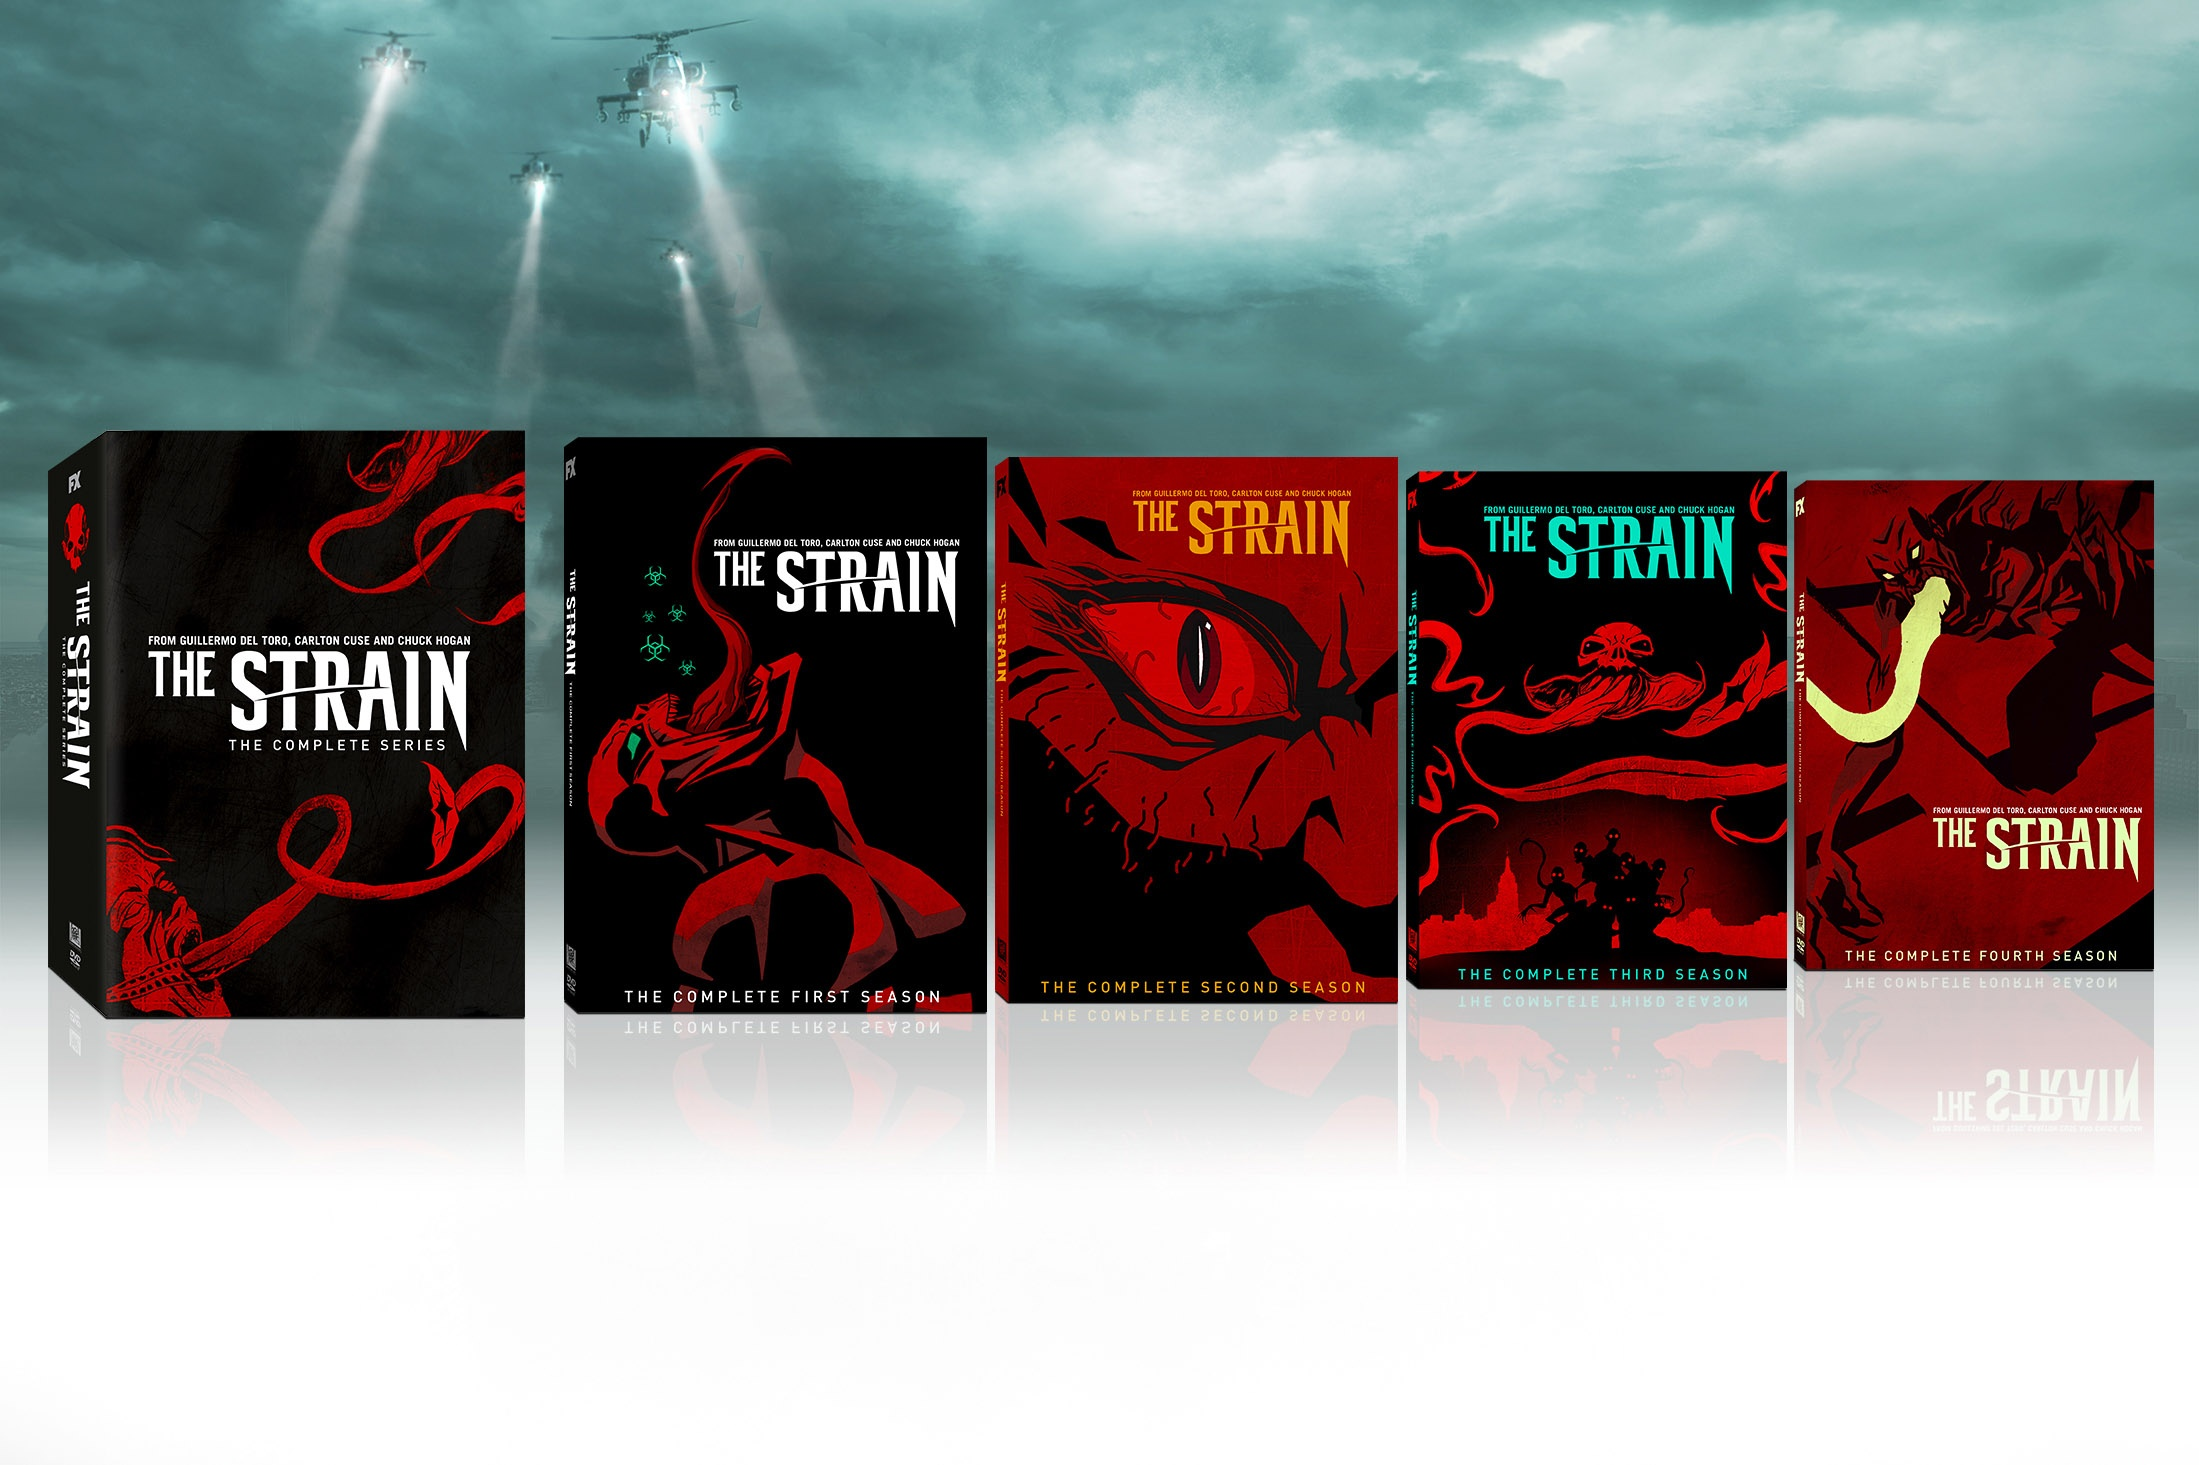 Image Media for The Strain Seasons 1-4 and Complete Series Comic-Con Exclusives